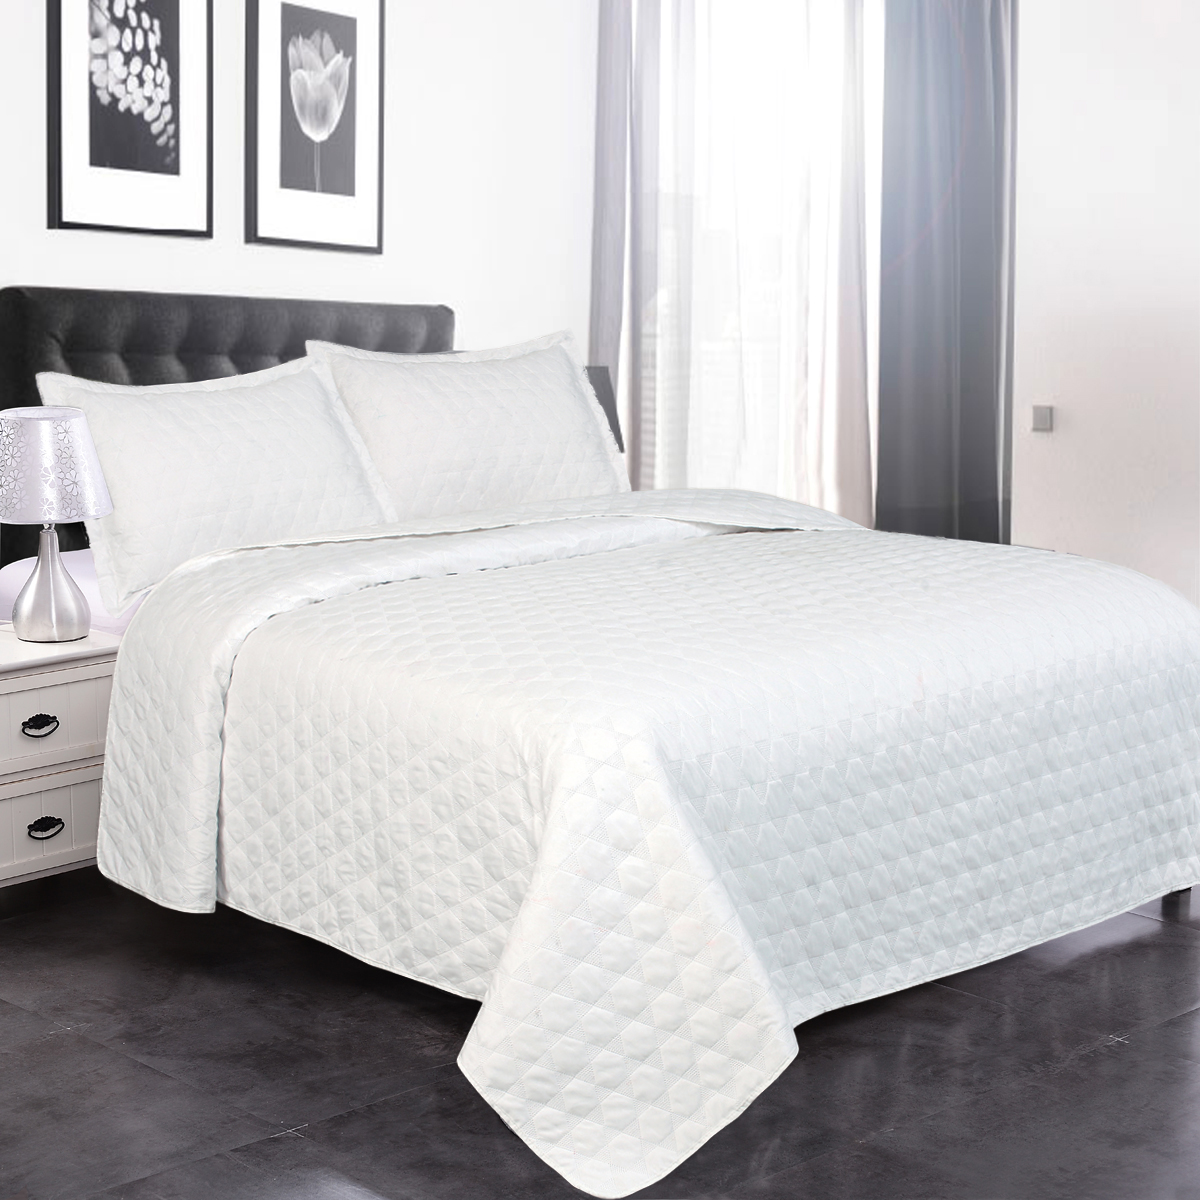 Luxury Ultrasonic Twin Quilt Set With Shams 2 Pieces